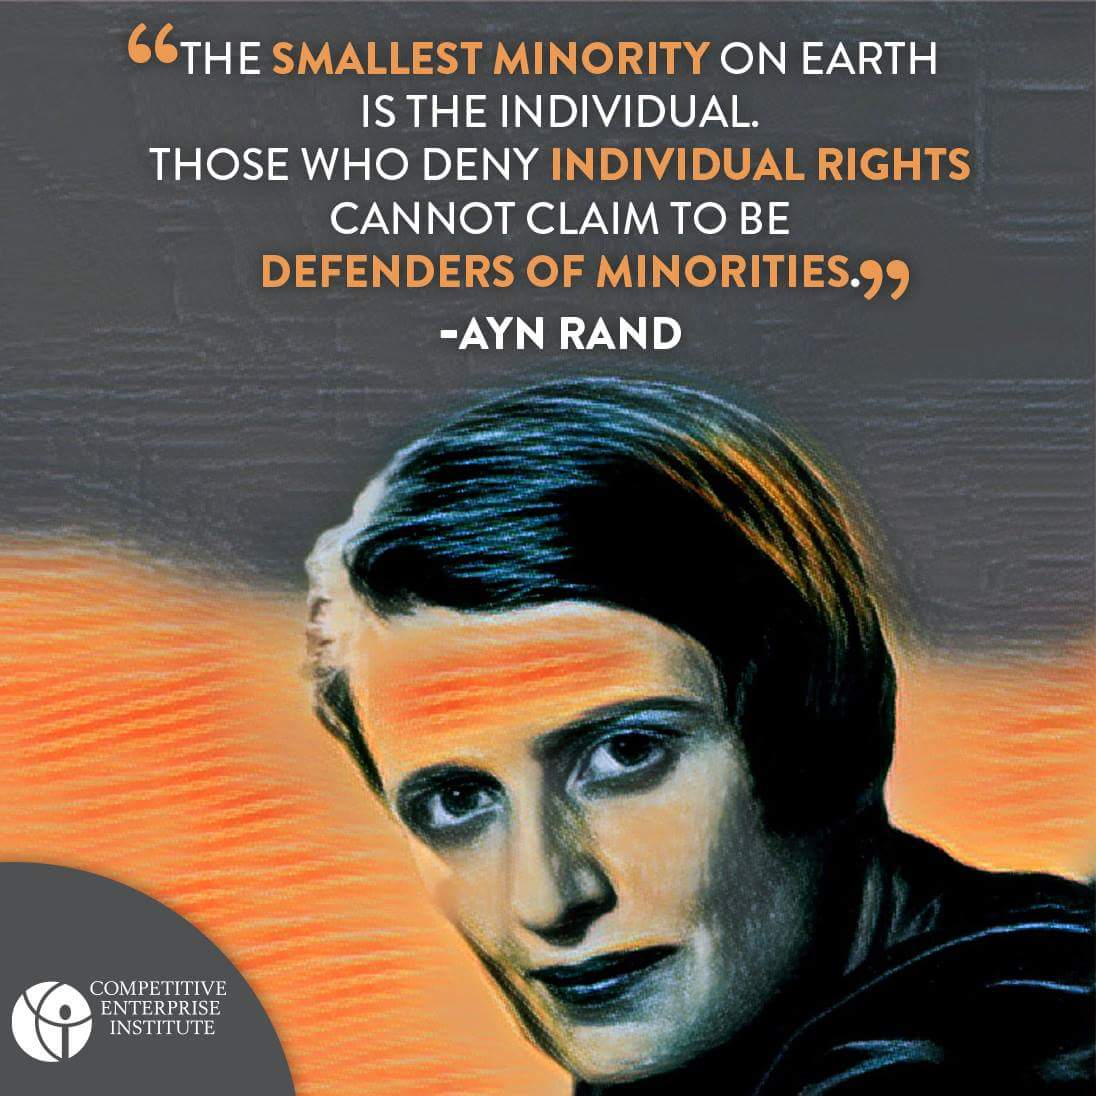 FB_IMG_1486077700032 ayn rand smallest minority is the individual